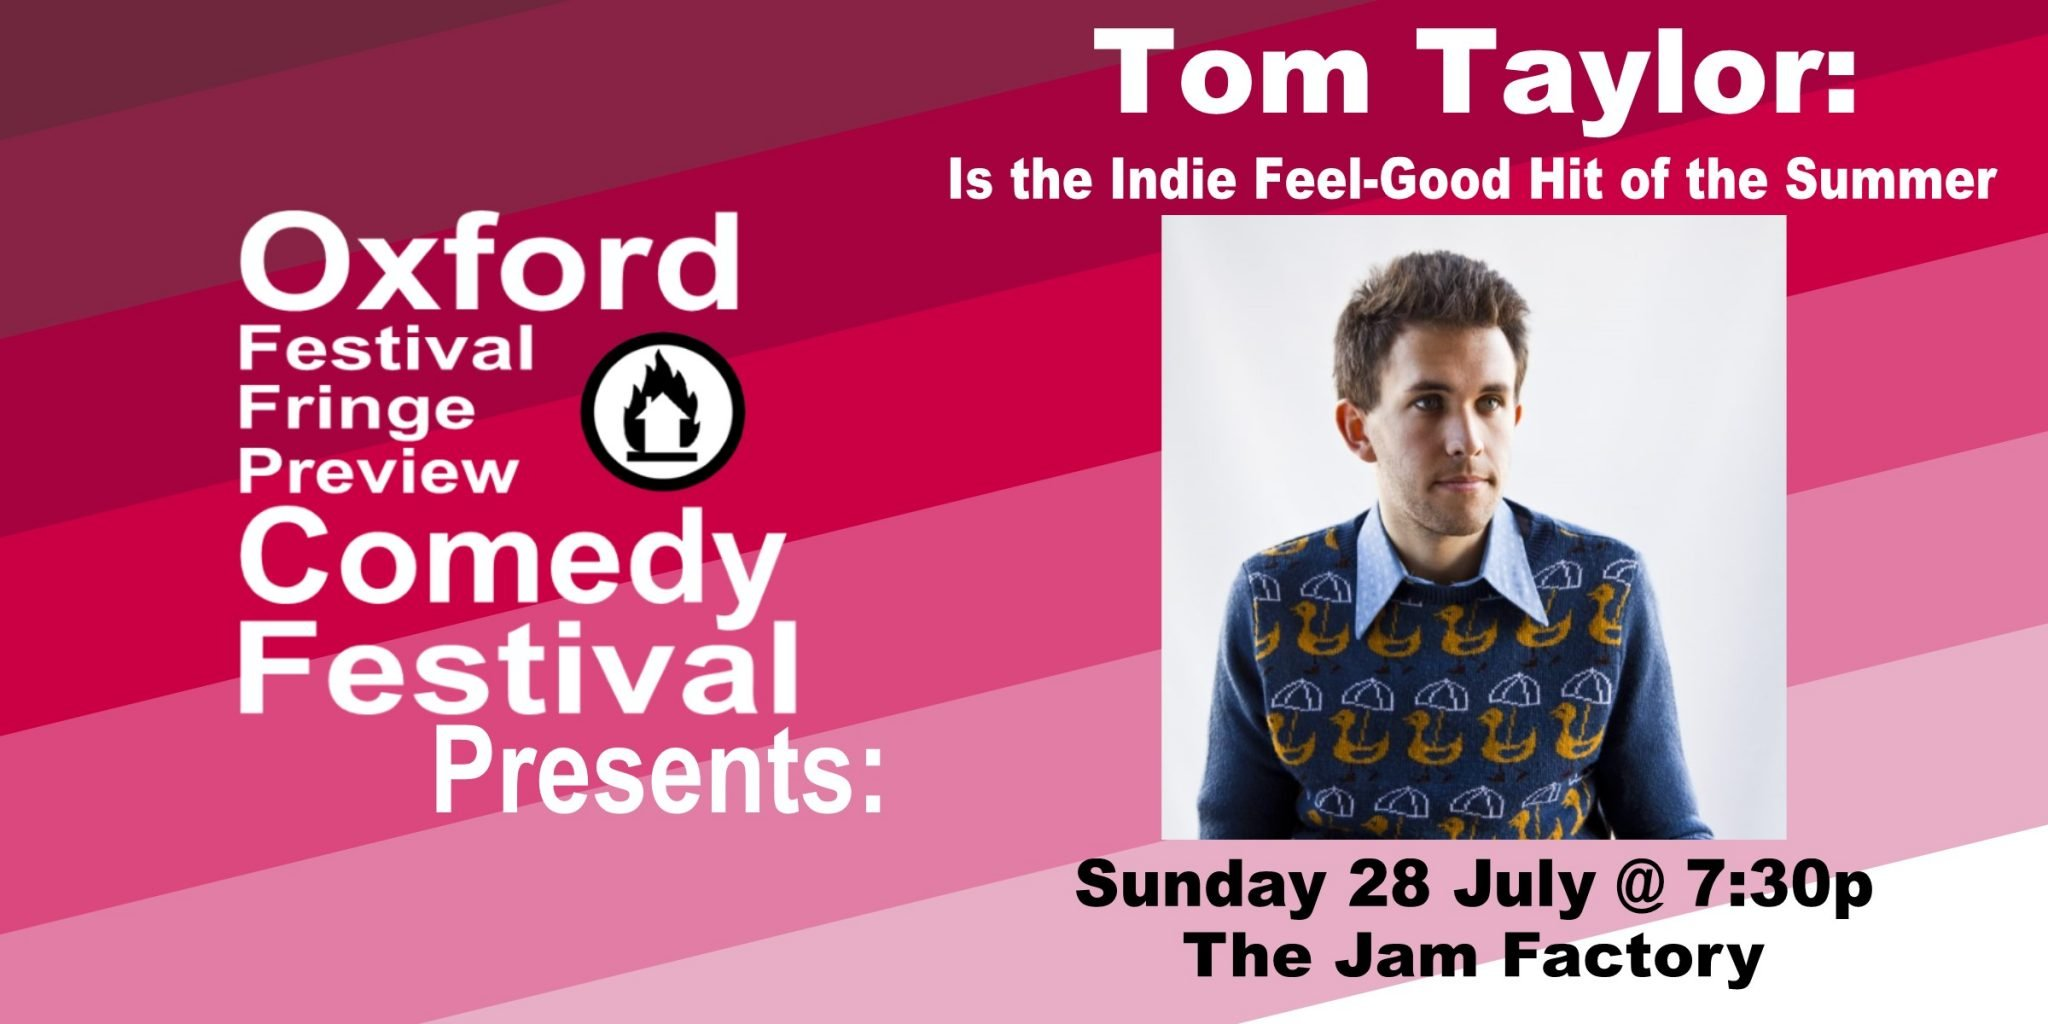 Oxford Comedy Festival 2019 presents Tom Taylor Is the Indie Feel-Good Hit of the Summer